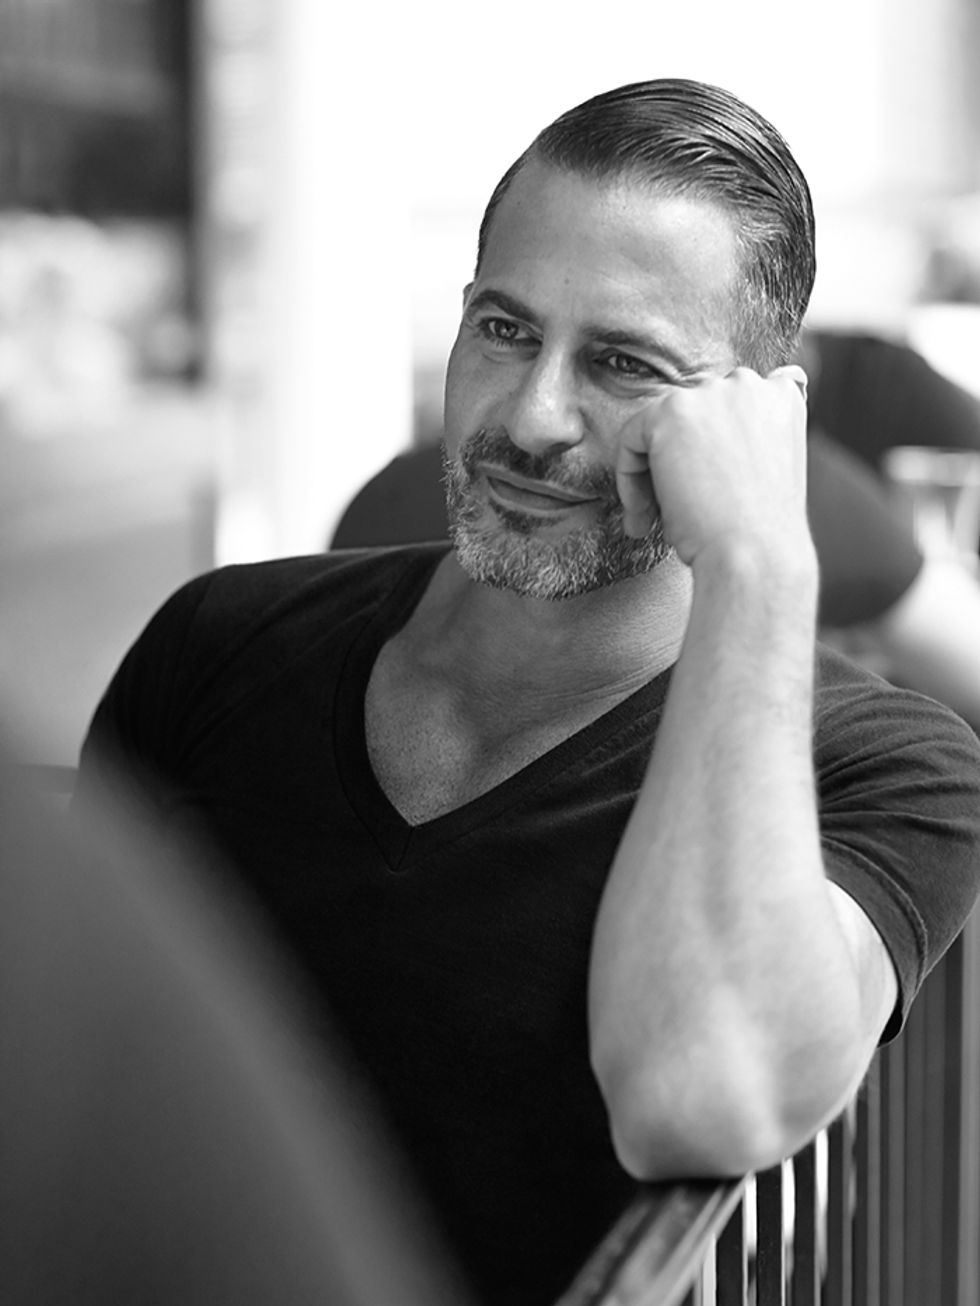 Marc Jacobs On Louis Vuitton, Porn Stars and Going On Grindr